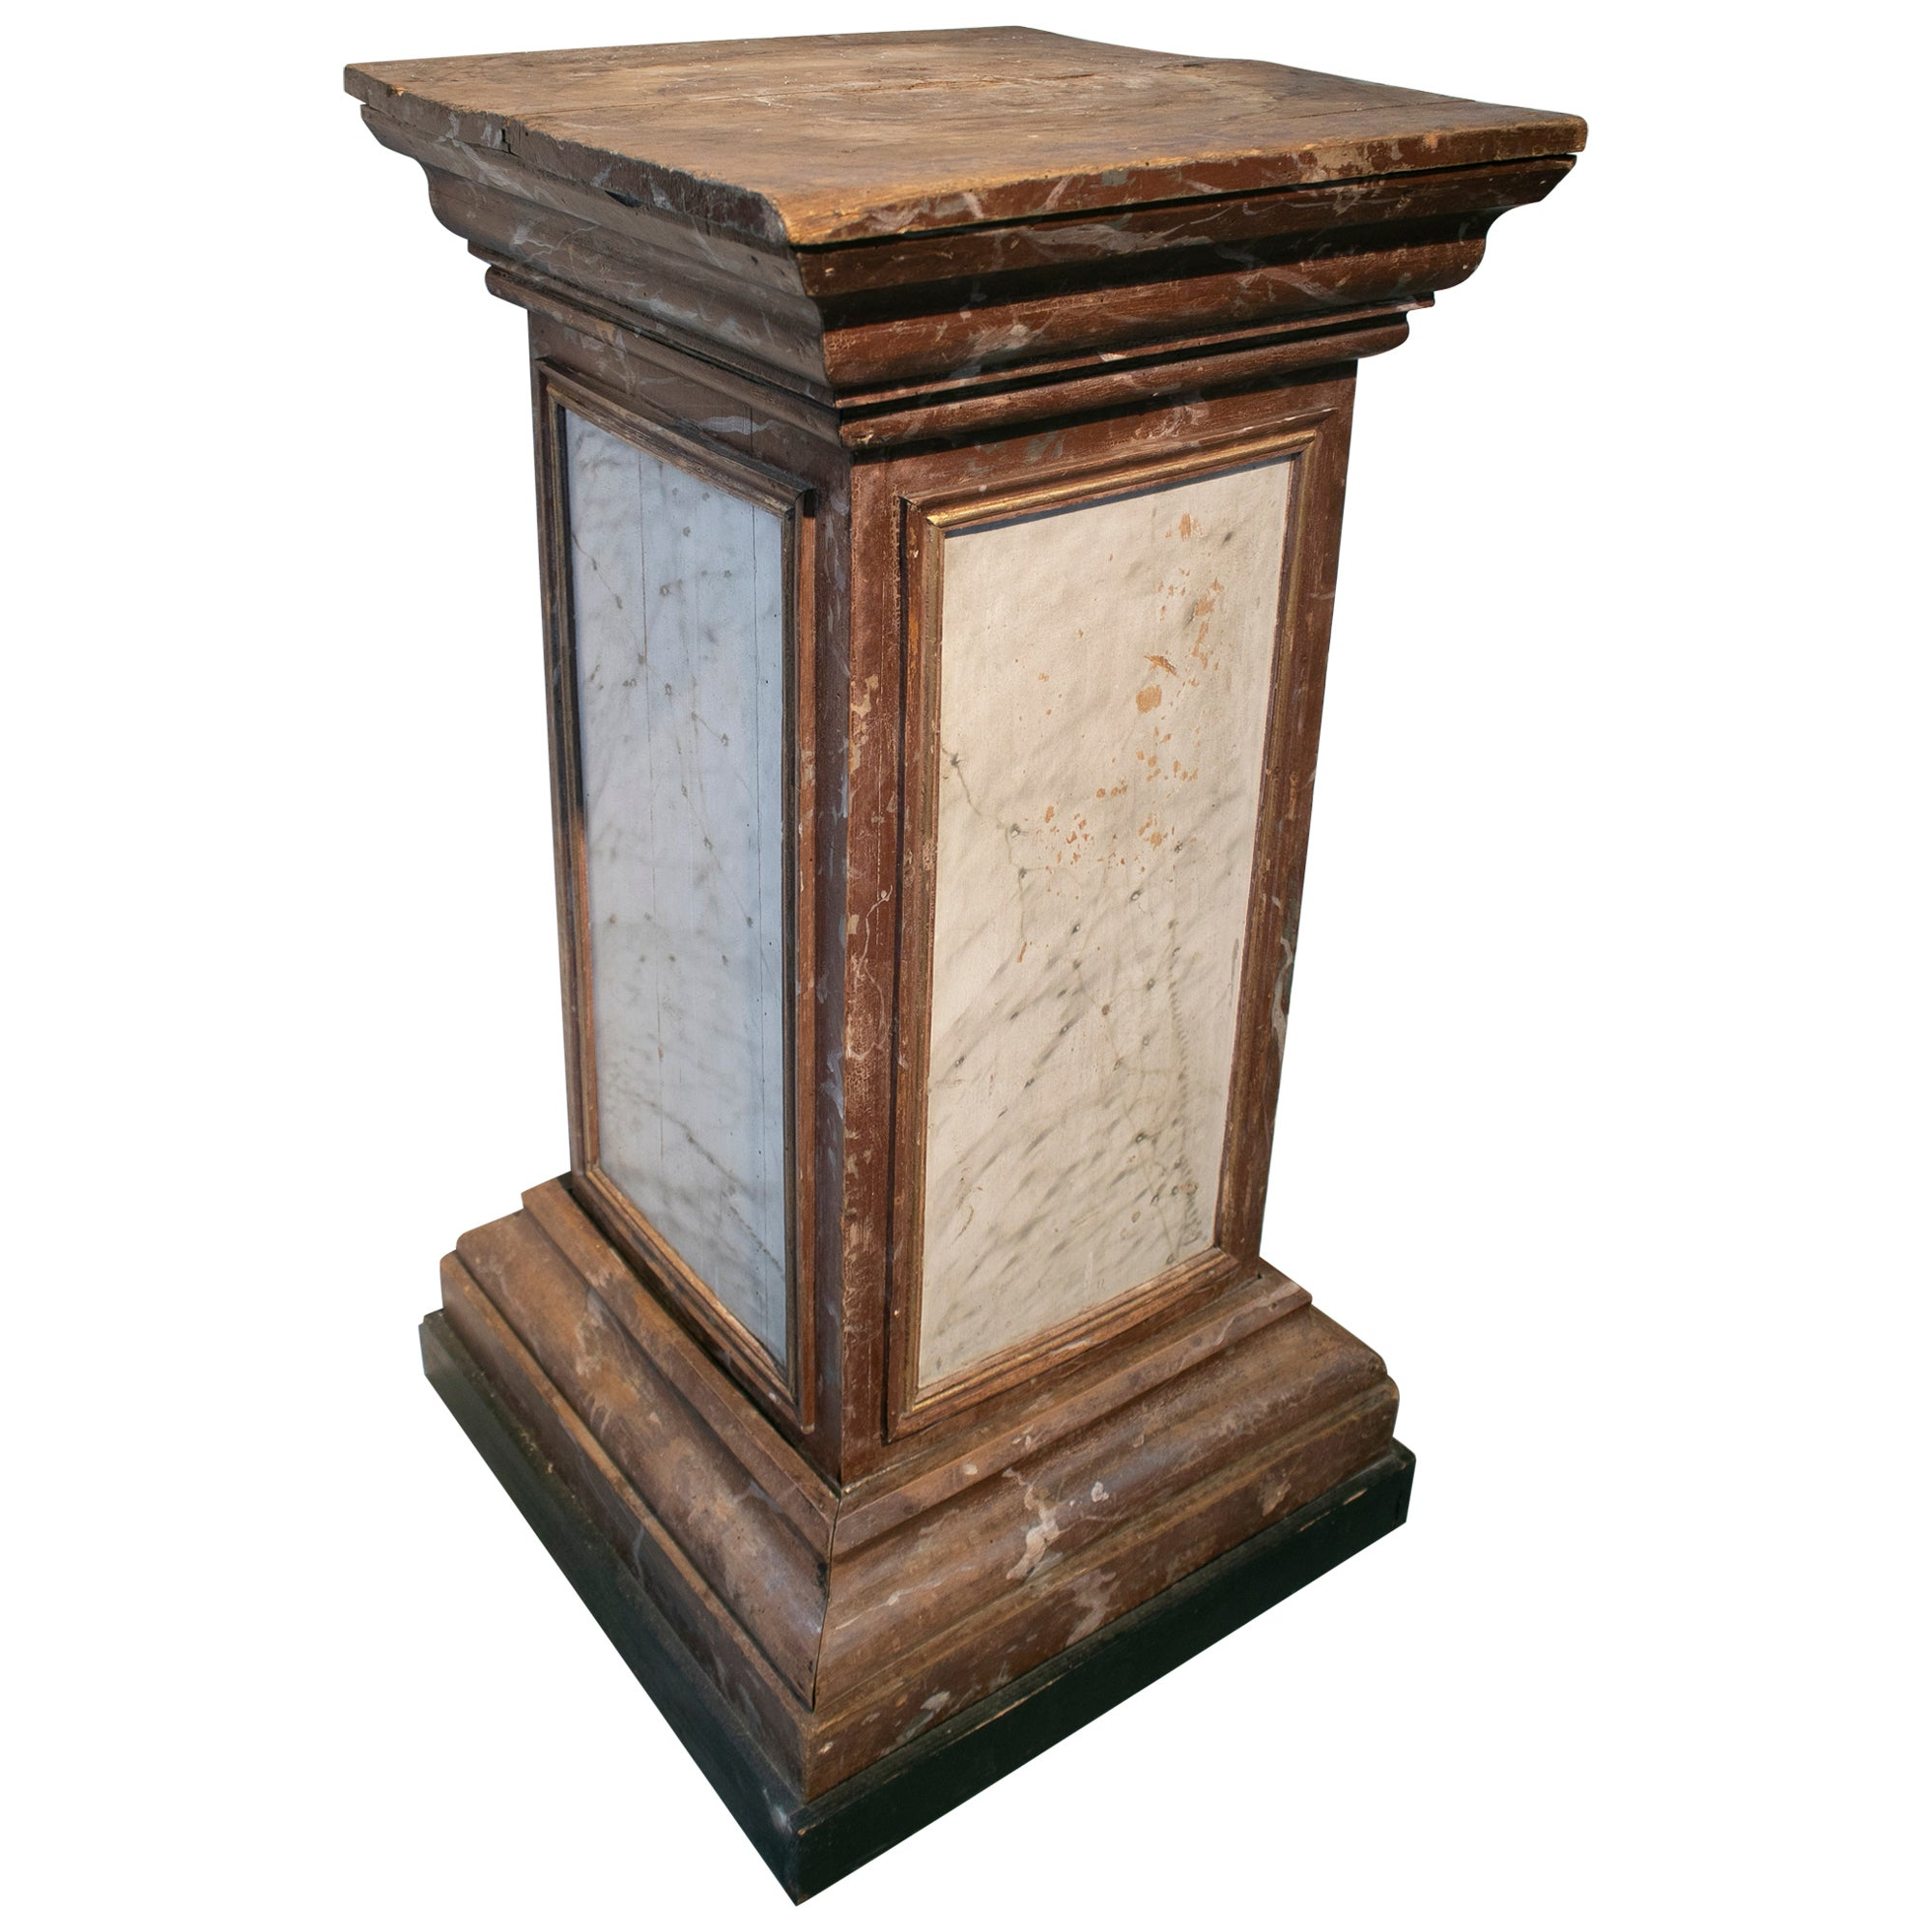 19th Century Spanish Wooden Pedestal Base Painted in Faux Marble